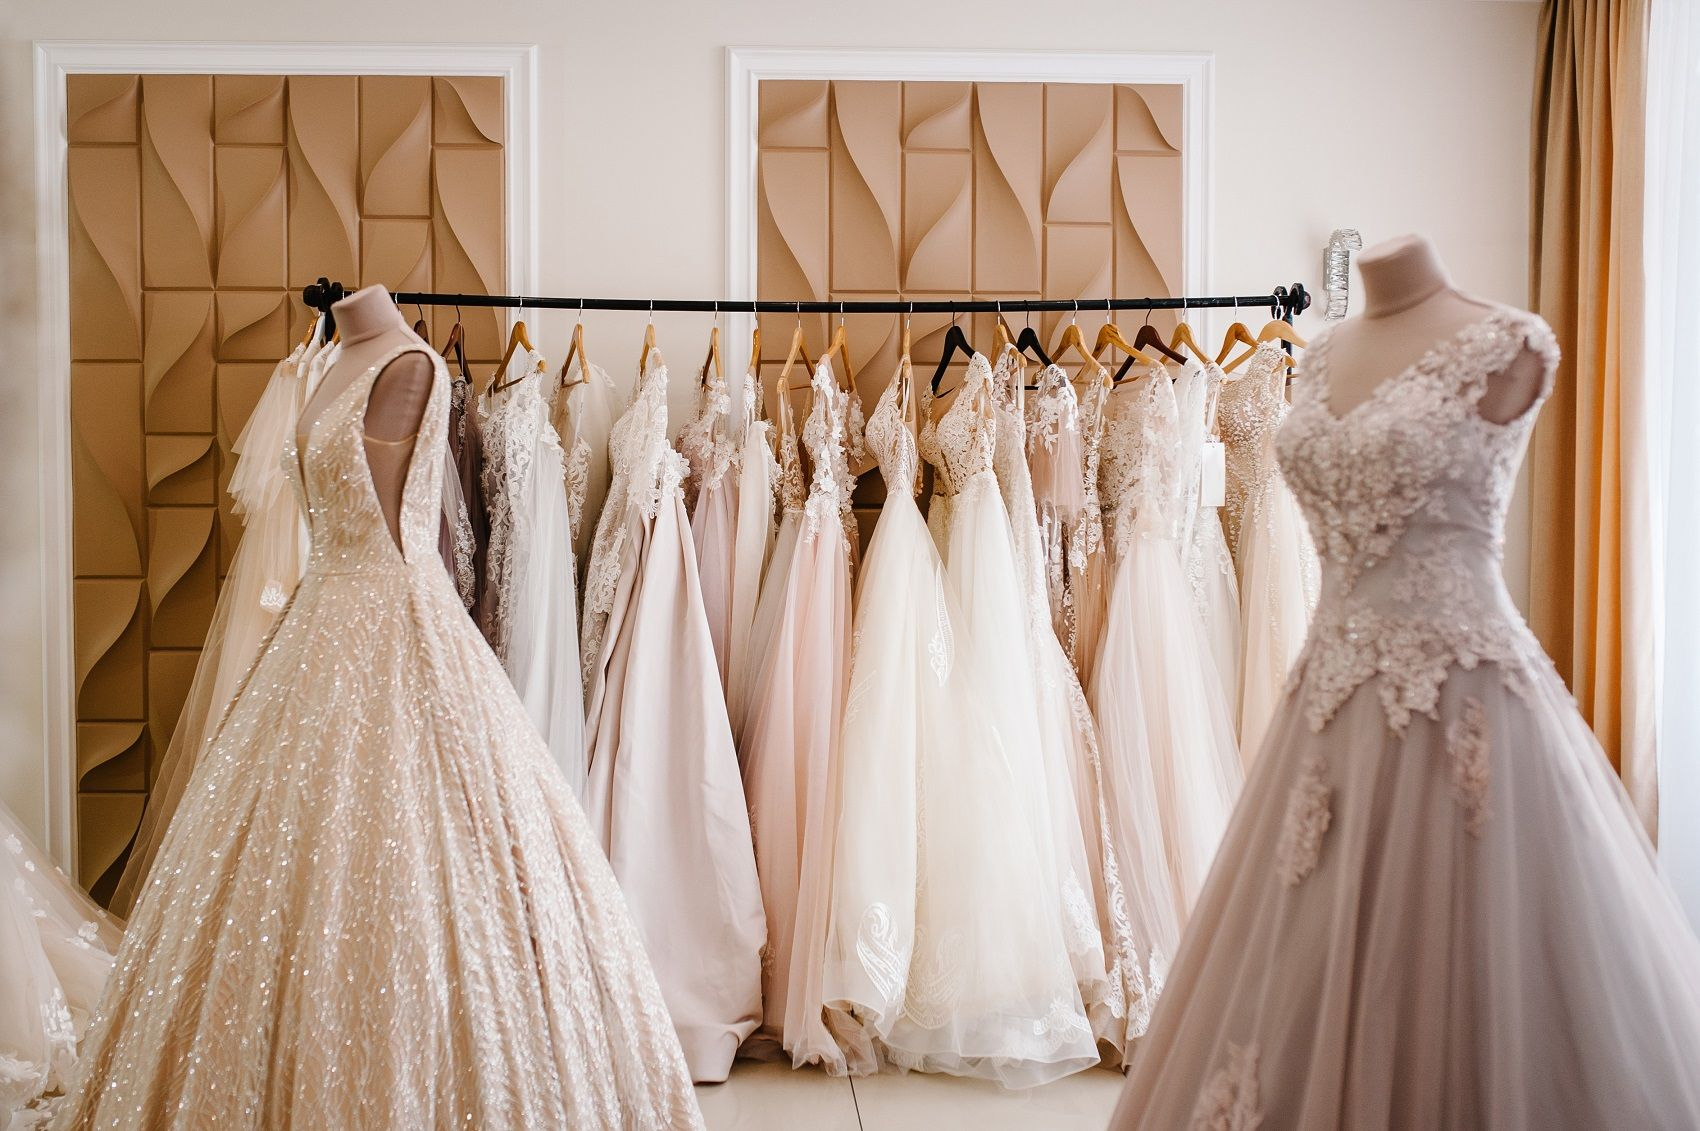 Wedding Dresses Consignment Messy Consignment Wedding Dresses Wedding Dresses Wedding Dress Search